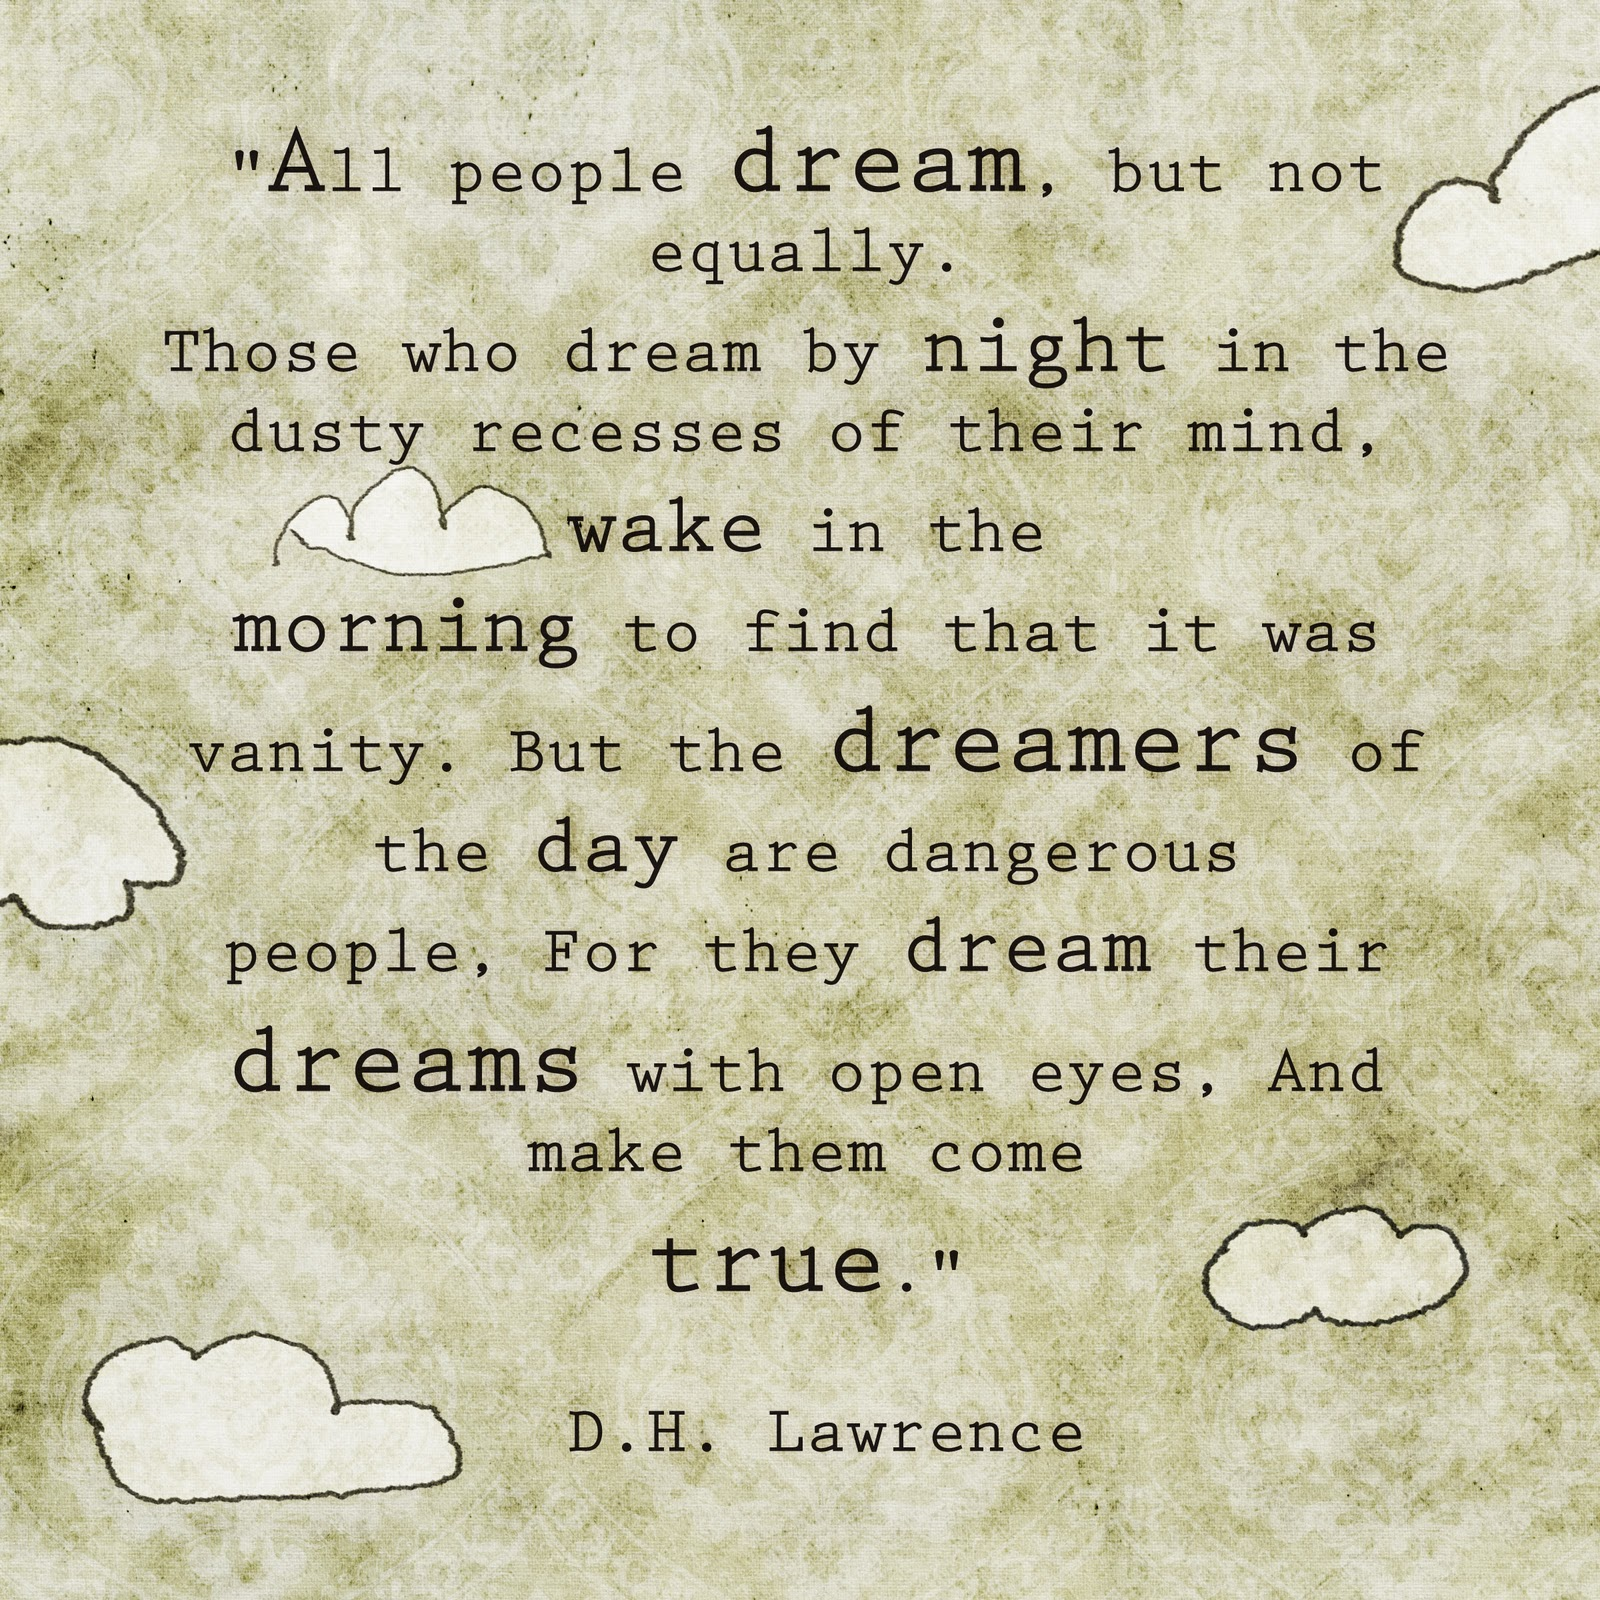 D. H. Lawrence's quote #4